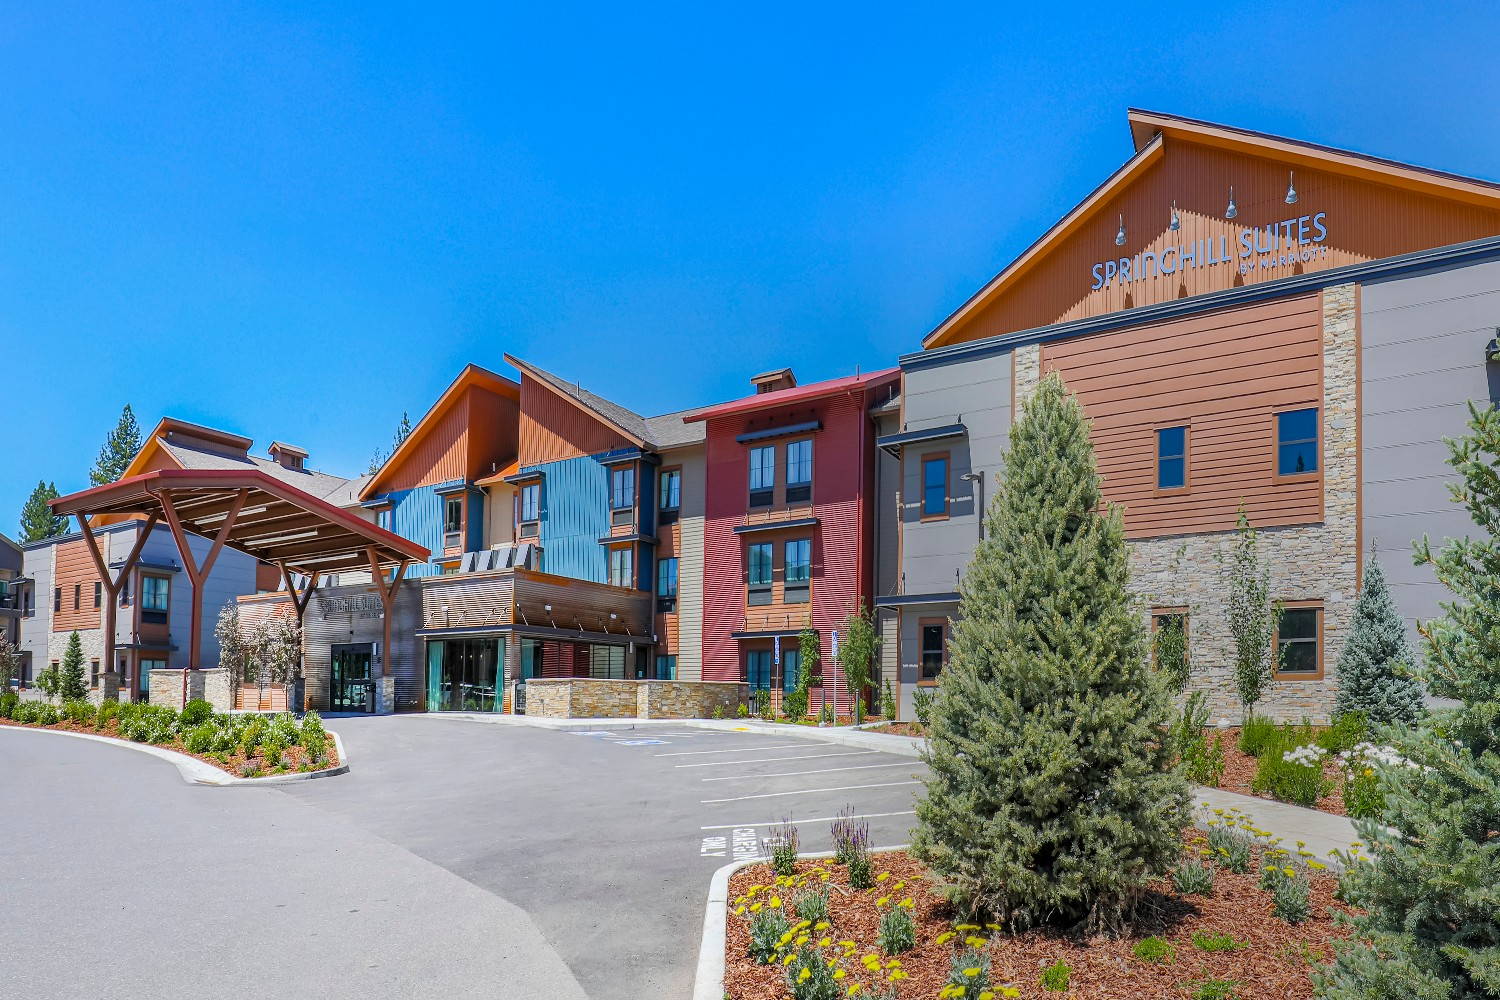 SpringHill Suites by Marriott in Truckee.